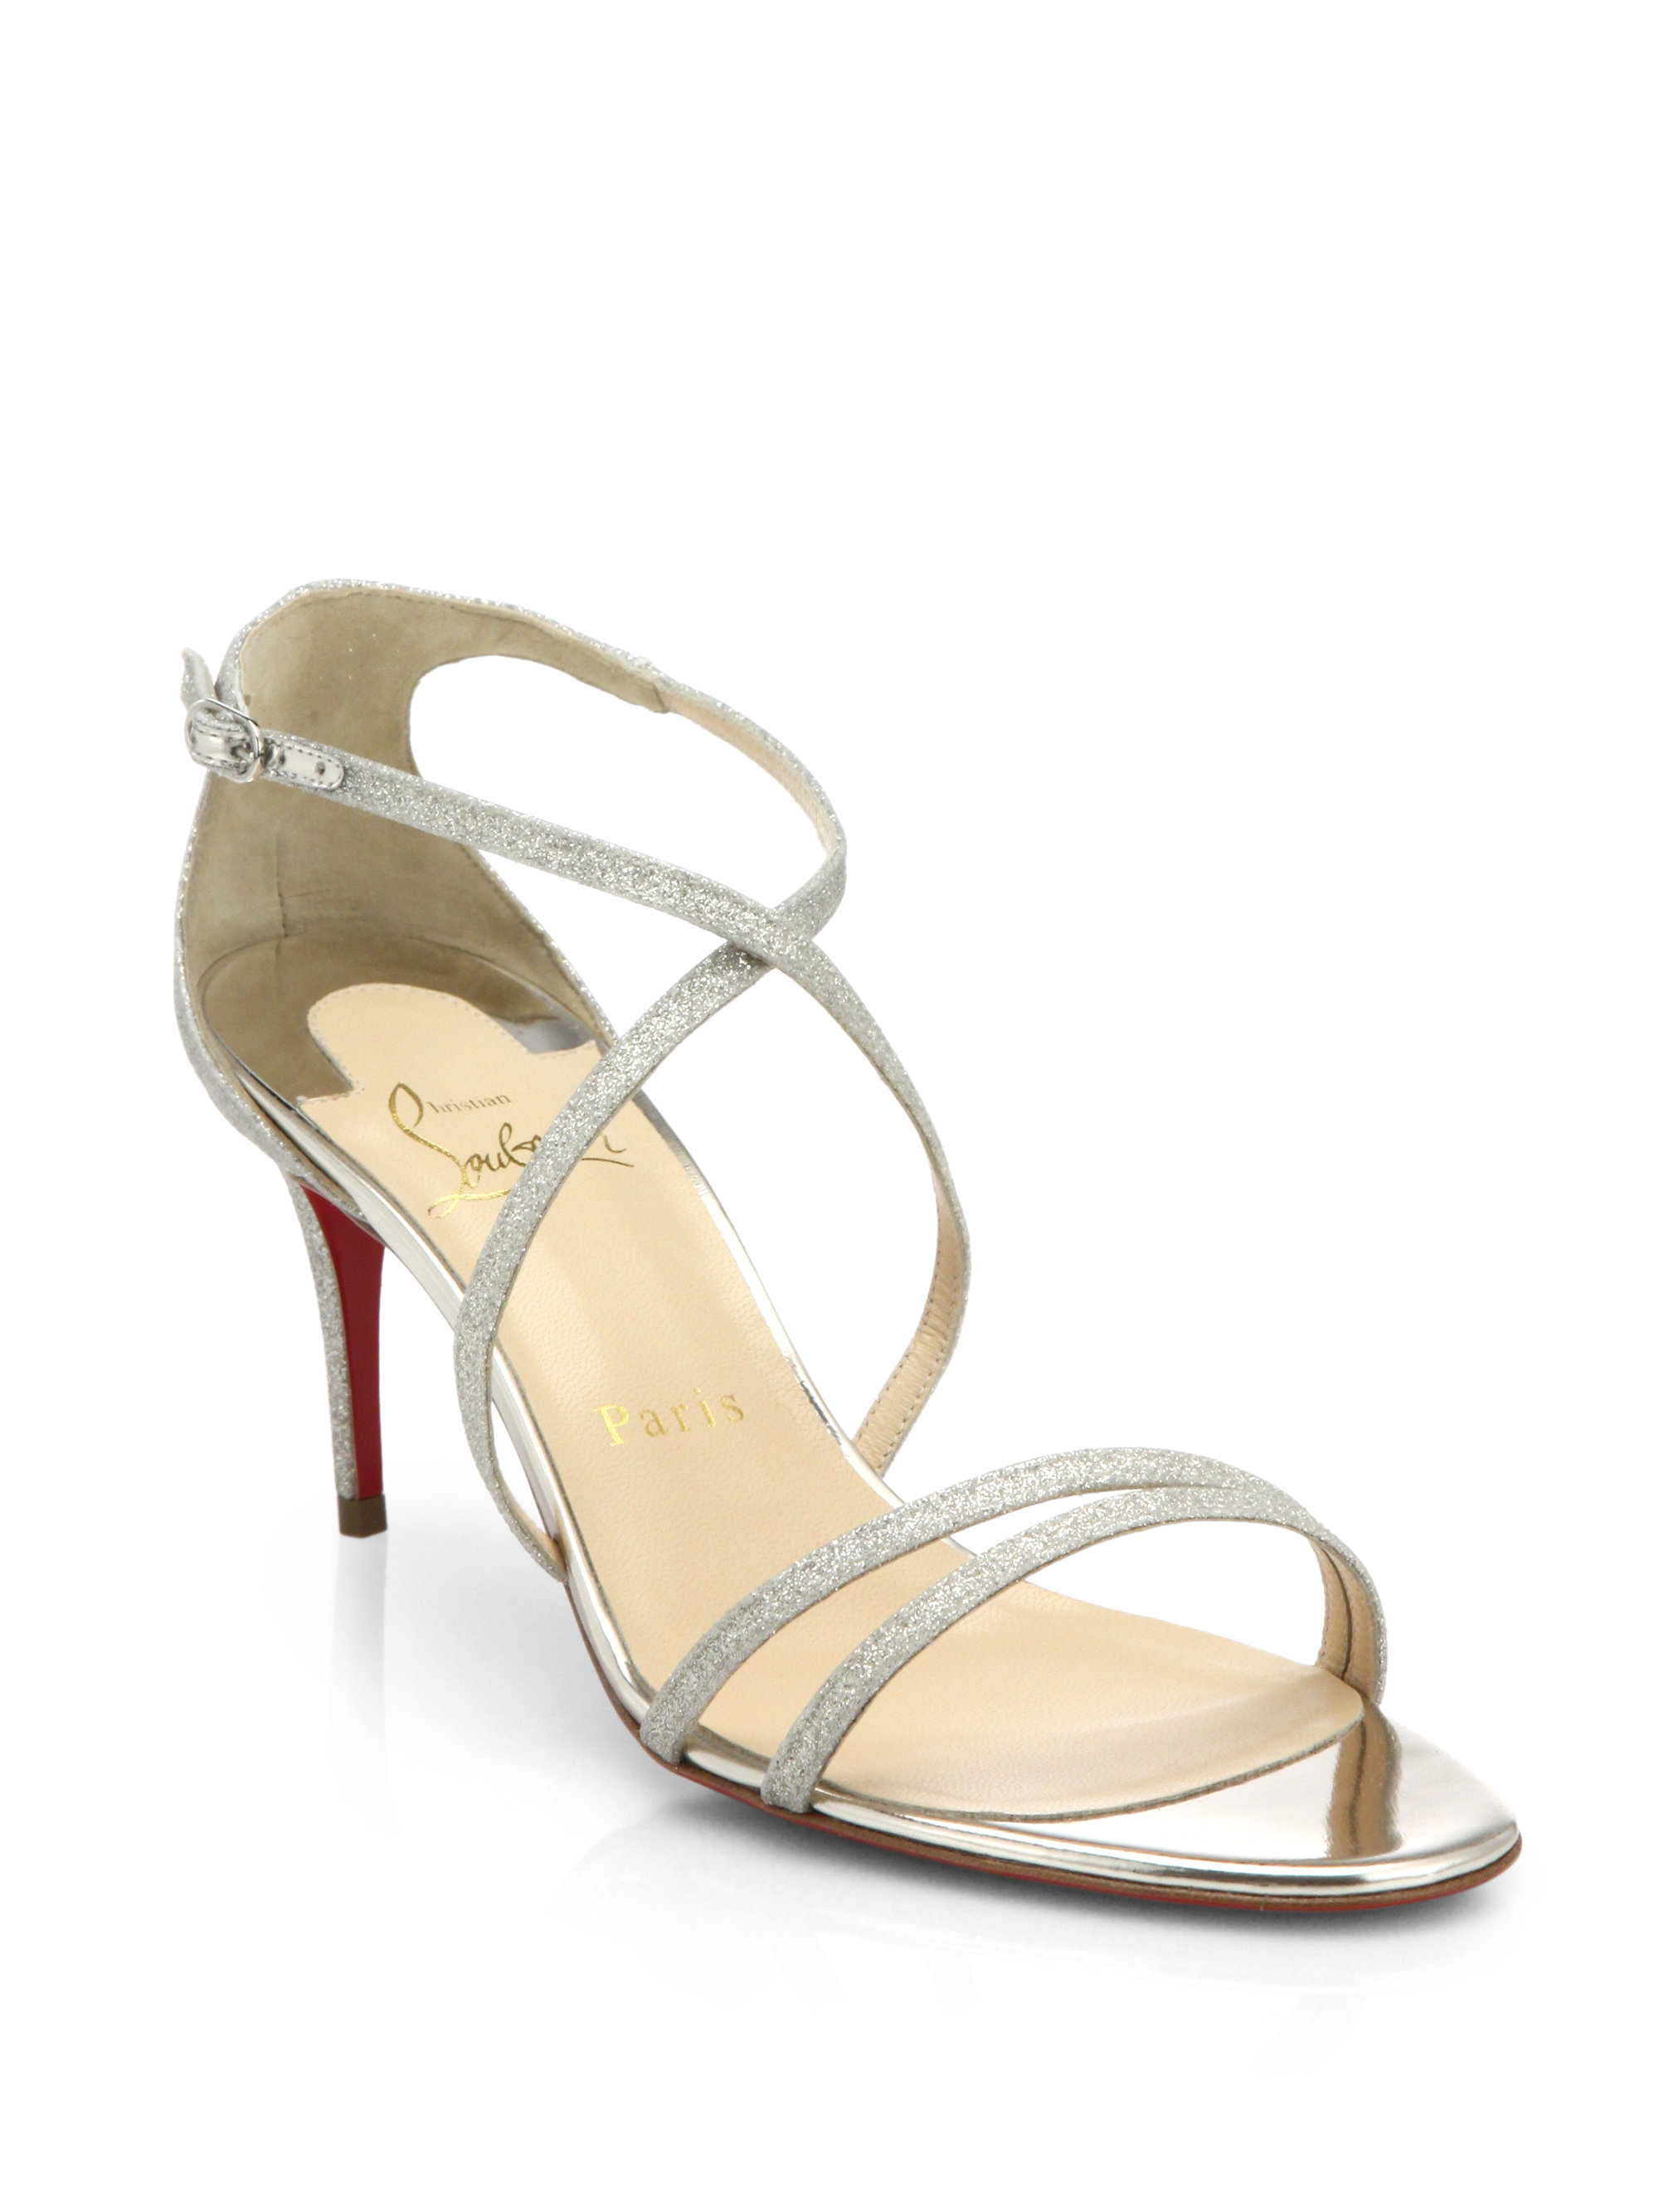 f21909de21fd ... release date lyst christian louboutin gwinee glittered leather sandals  in white 1e62d 87c50